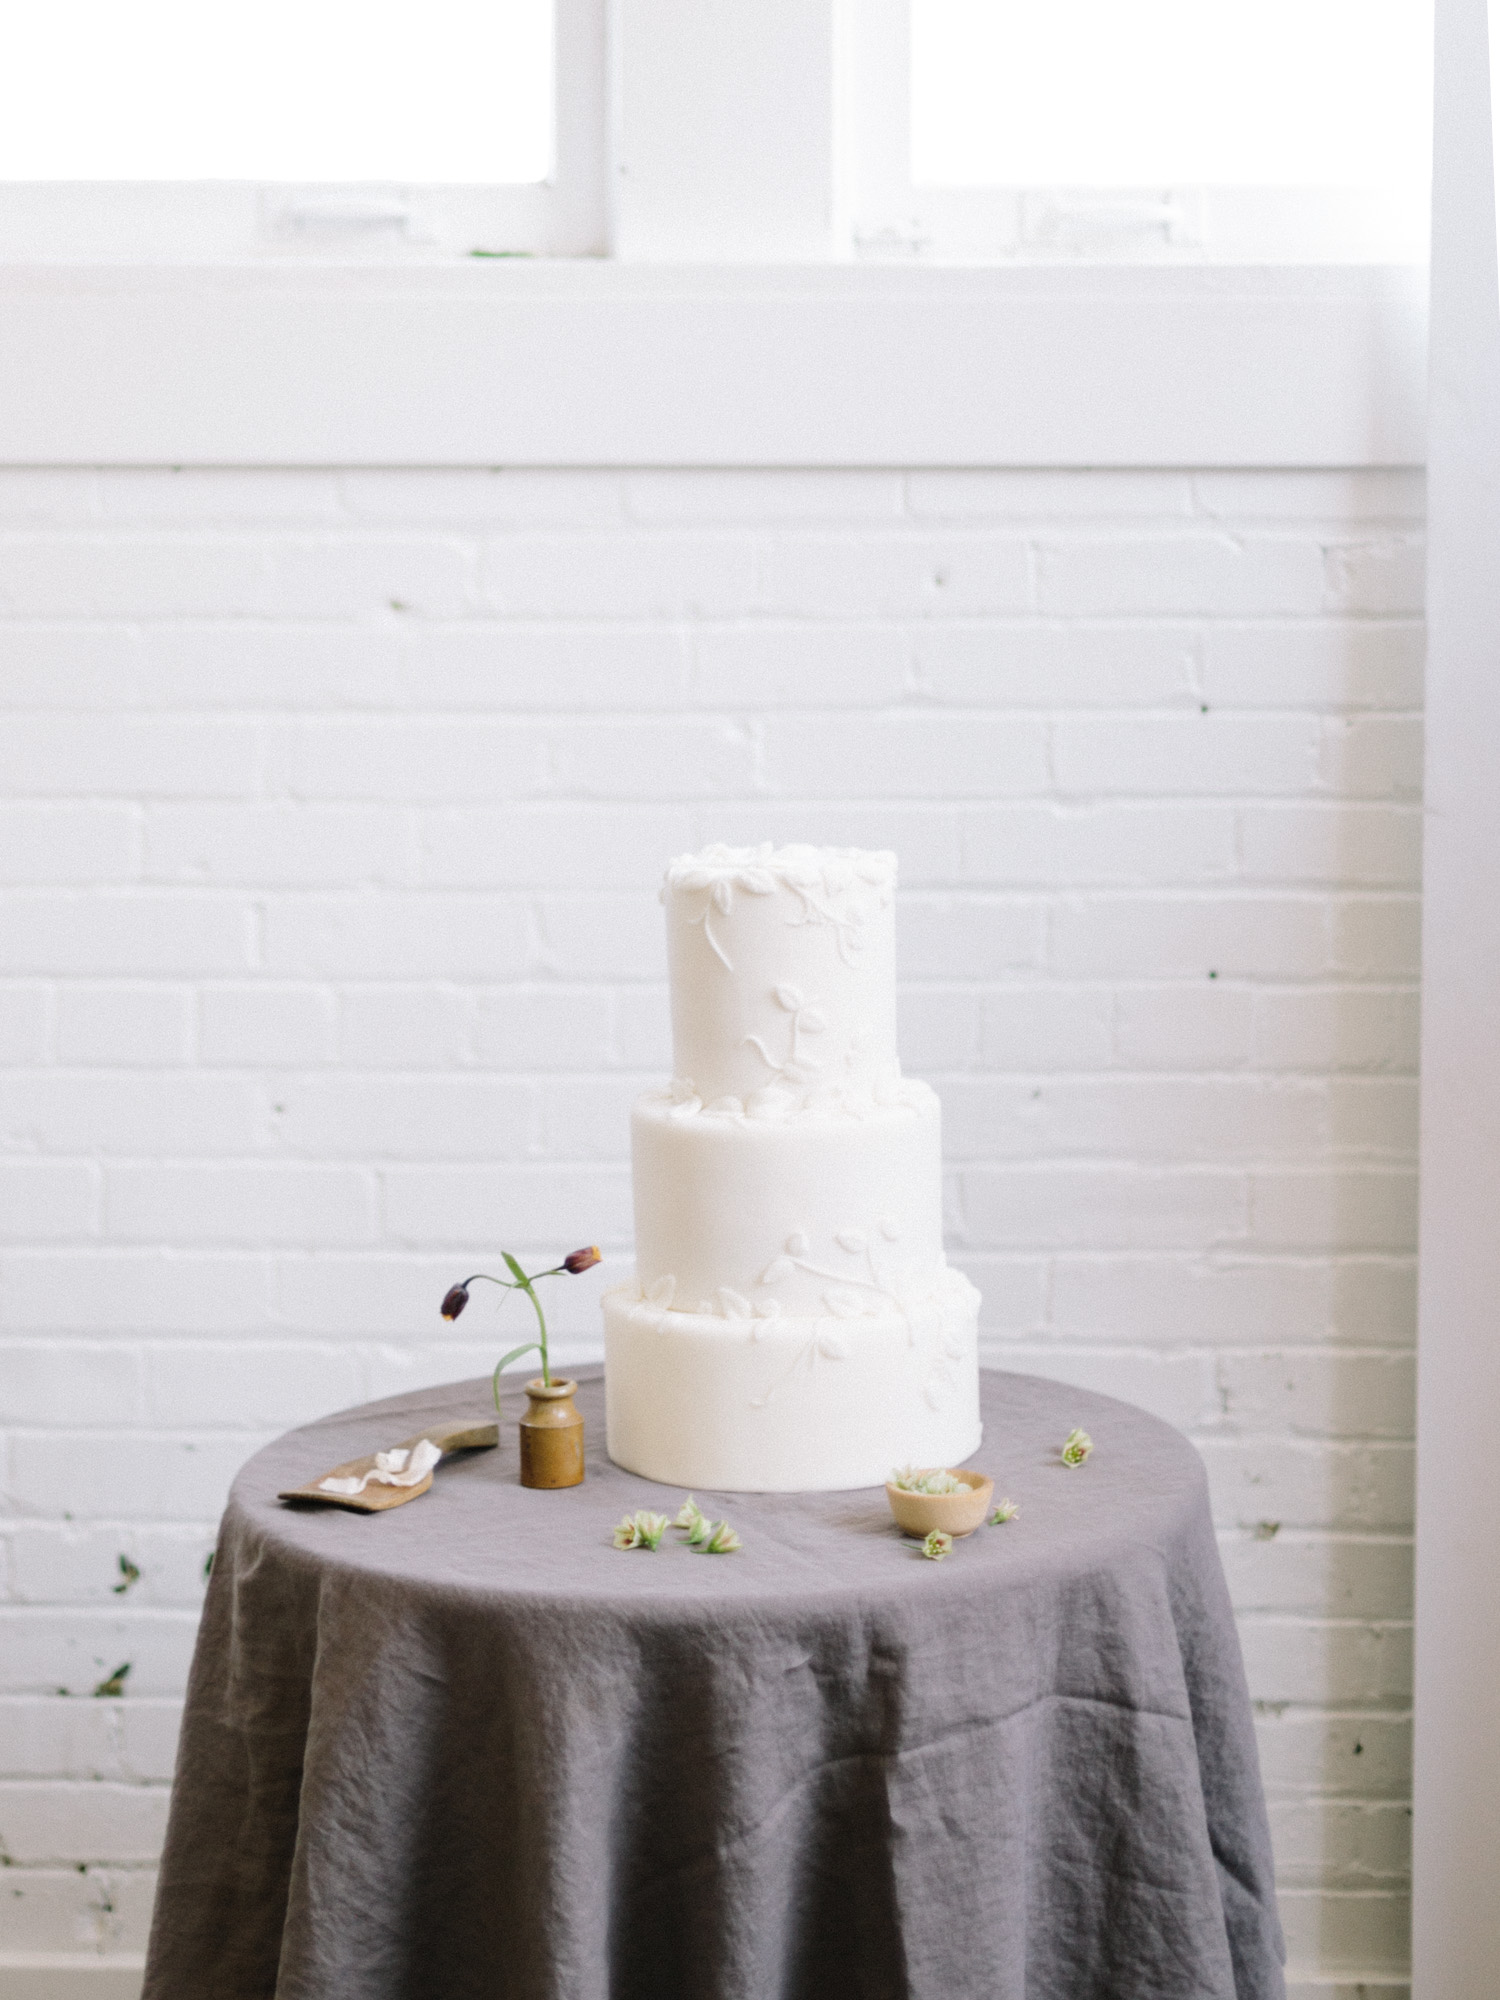 A three tier white wedding cake with vine design rests on a table with flowers